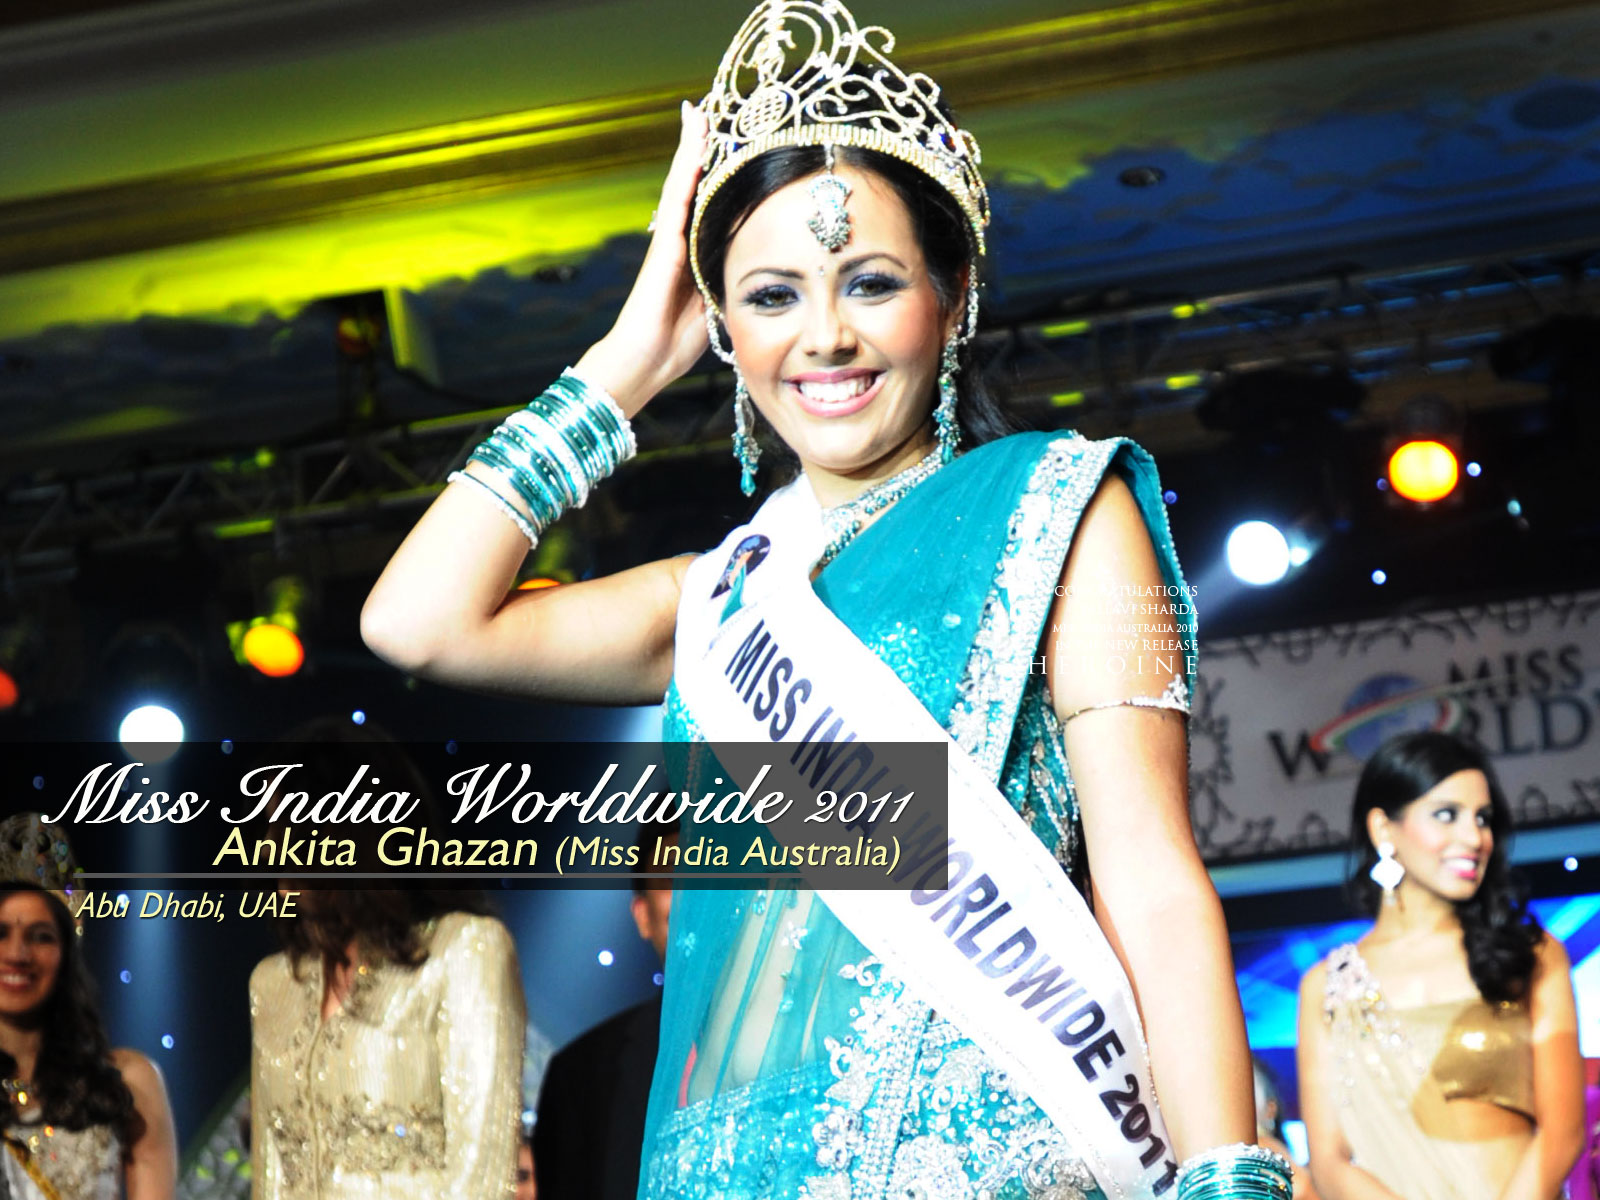 Ankita wins Miss India Worldwide 2011